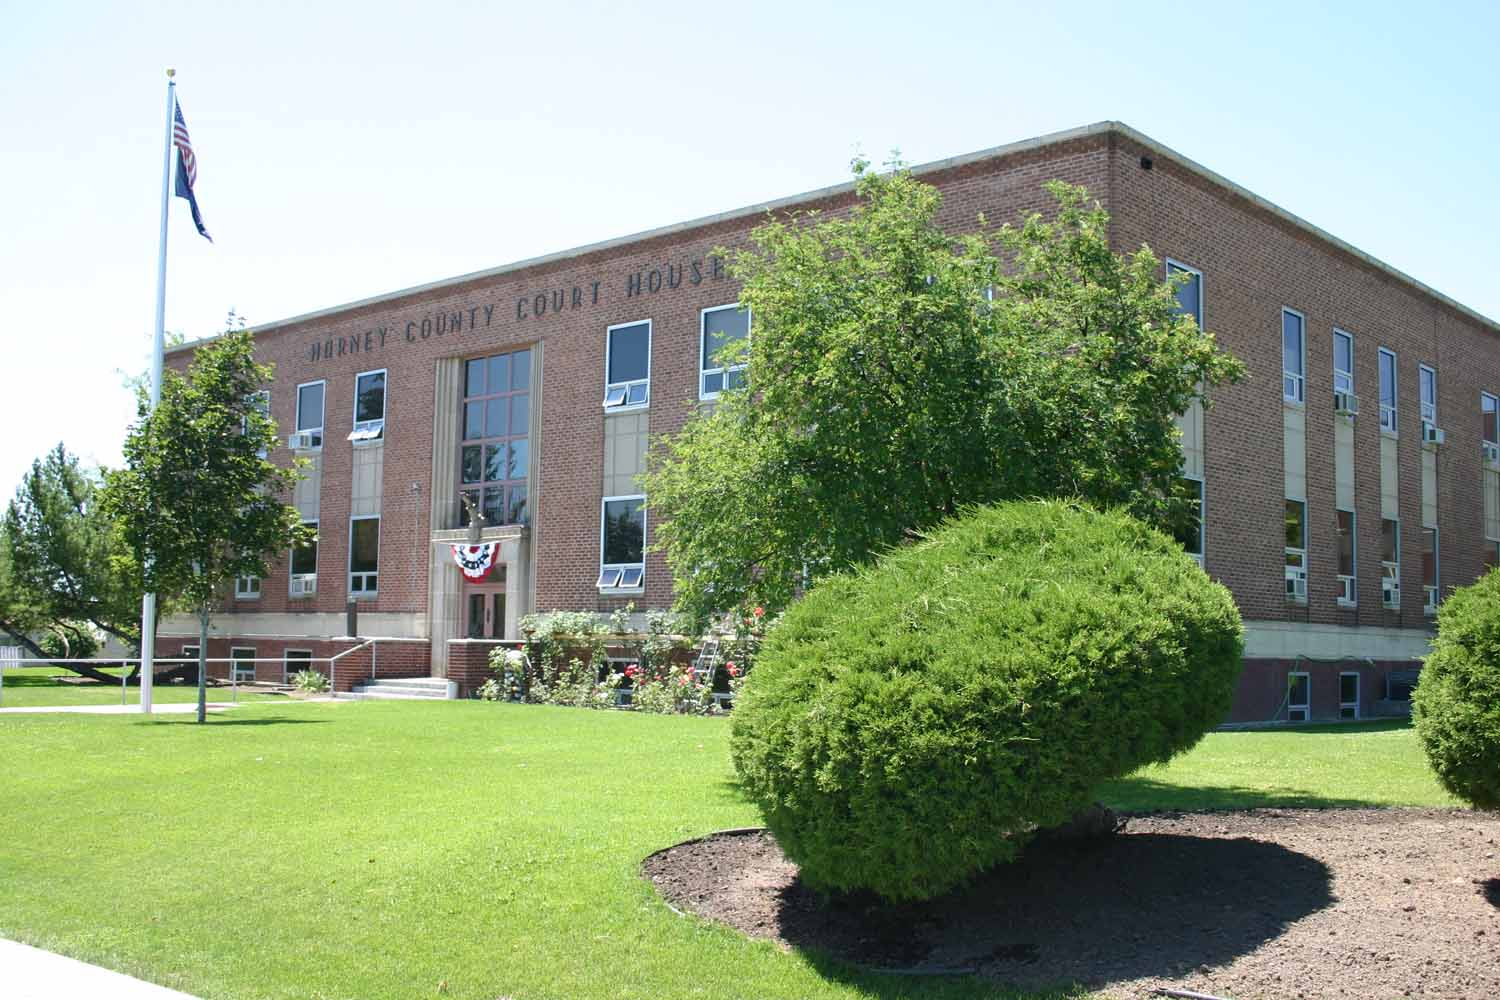 Harney County Courthouse